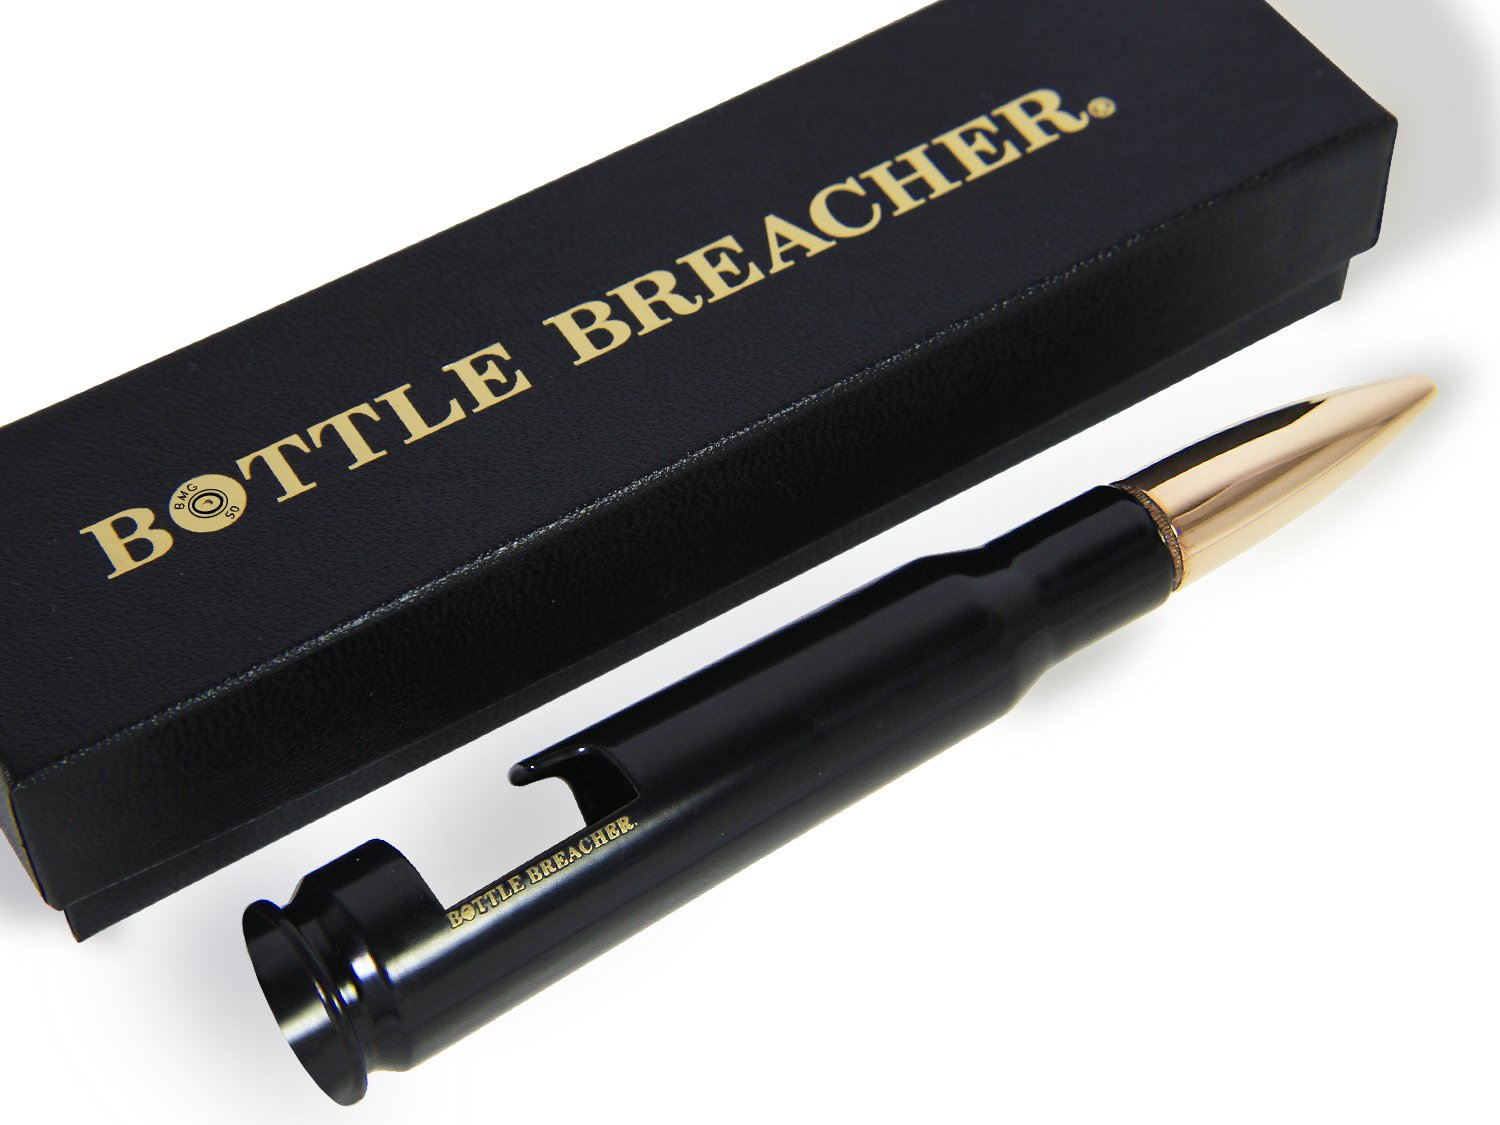 50 Caliber BMG Black Bottle Breacher Bottle Opener with Gift Box Made in the USA